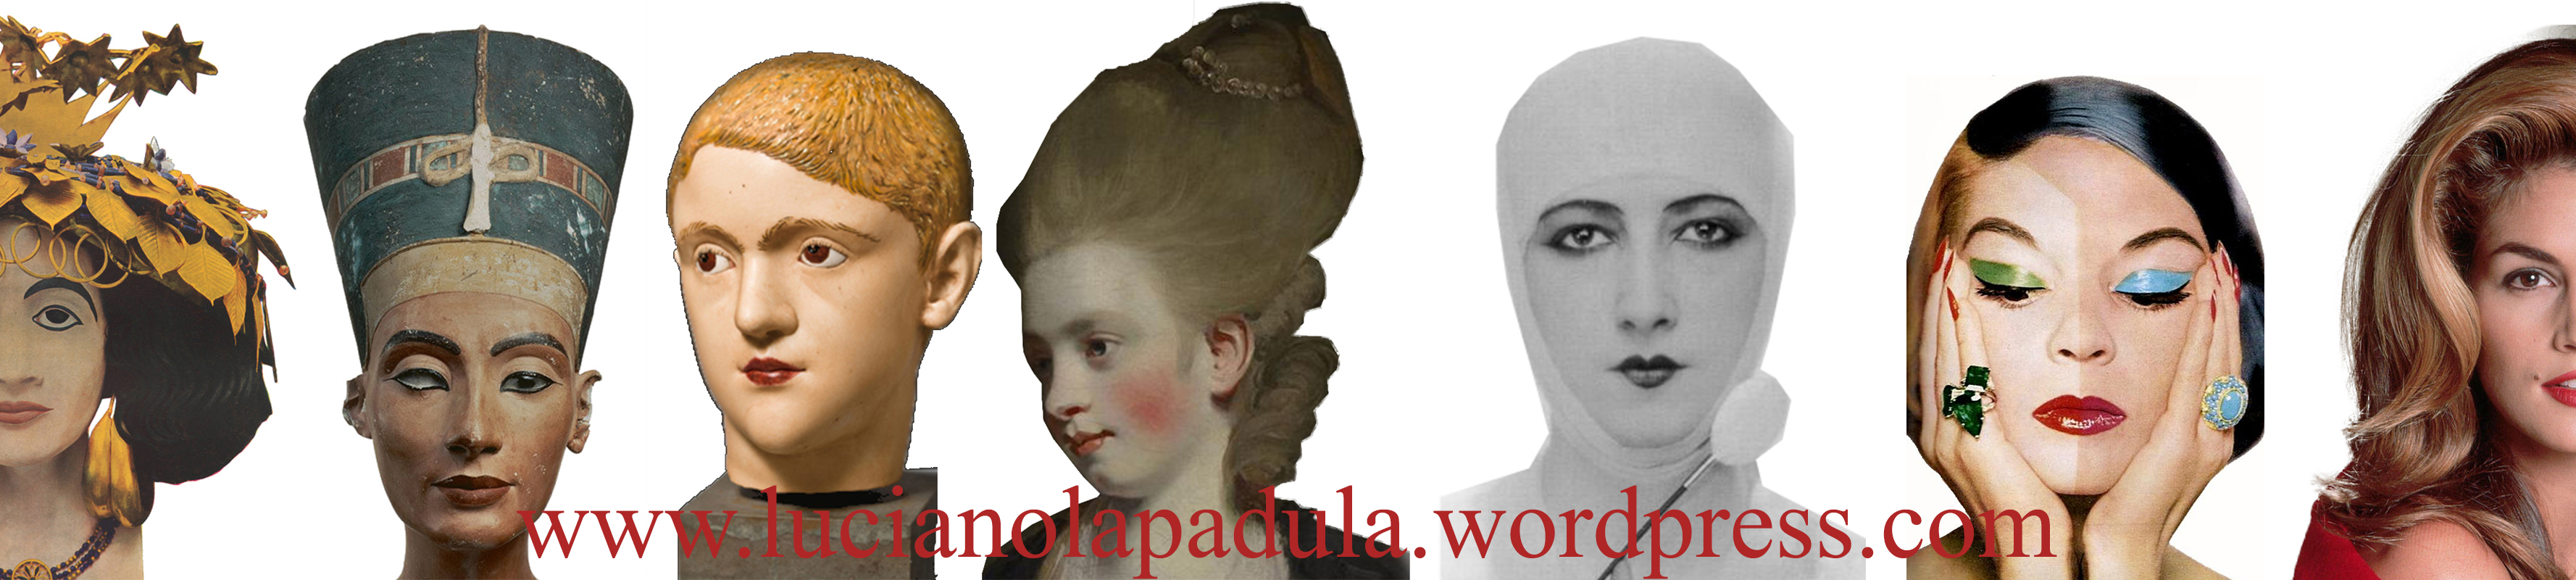 luciano lapadula storia makeup rossetto blog wordpress libro moda fashion history costume macabro grottesco